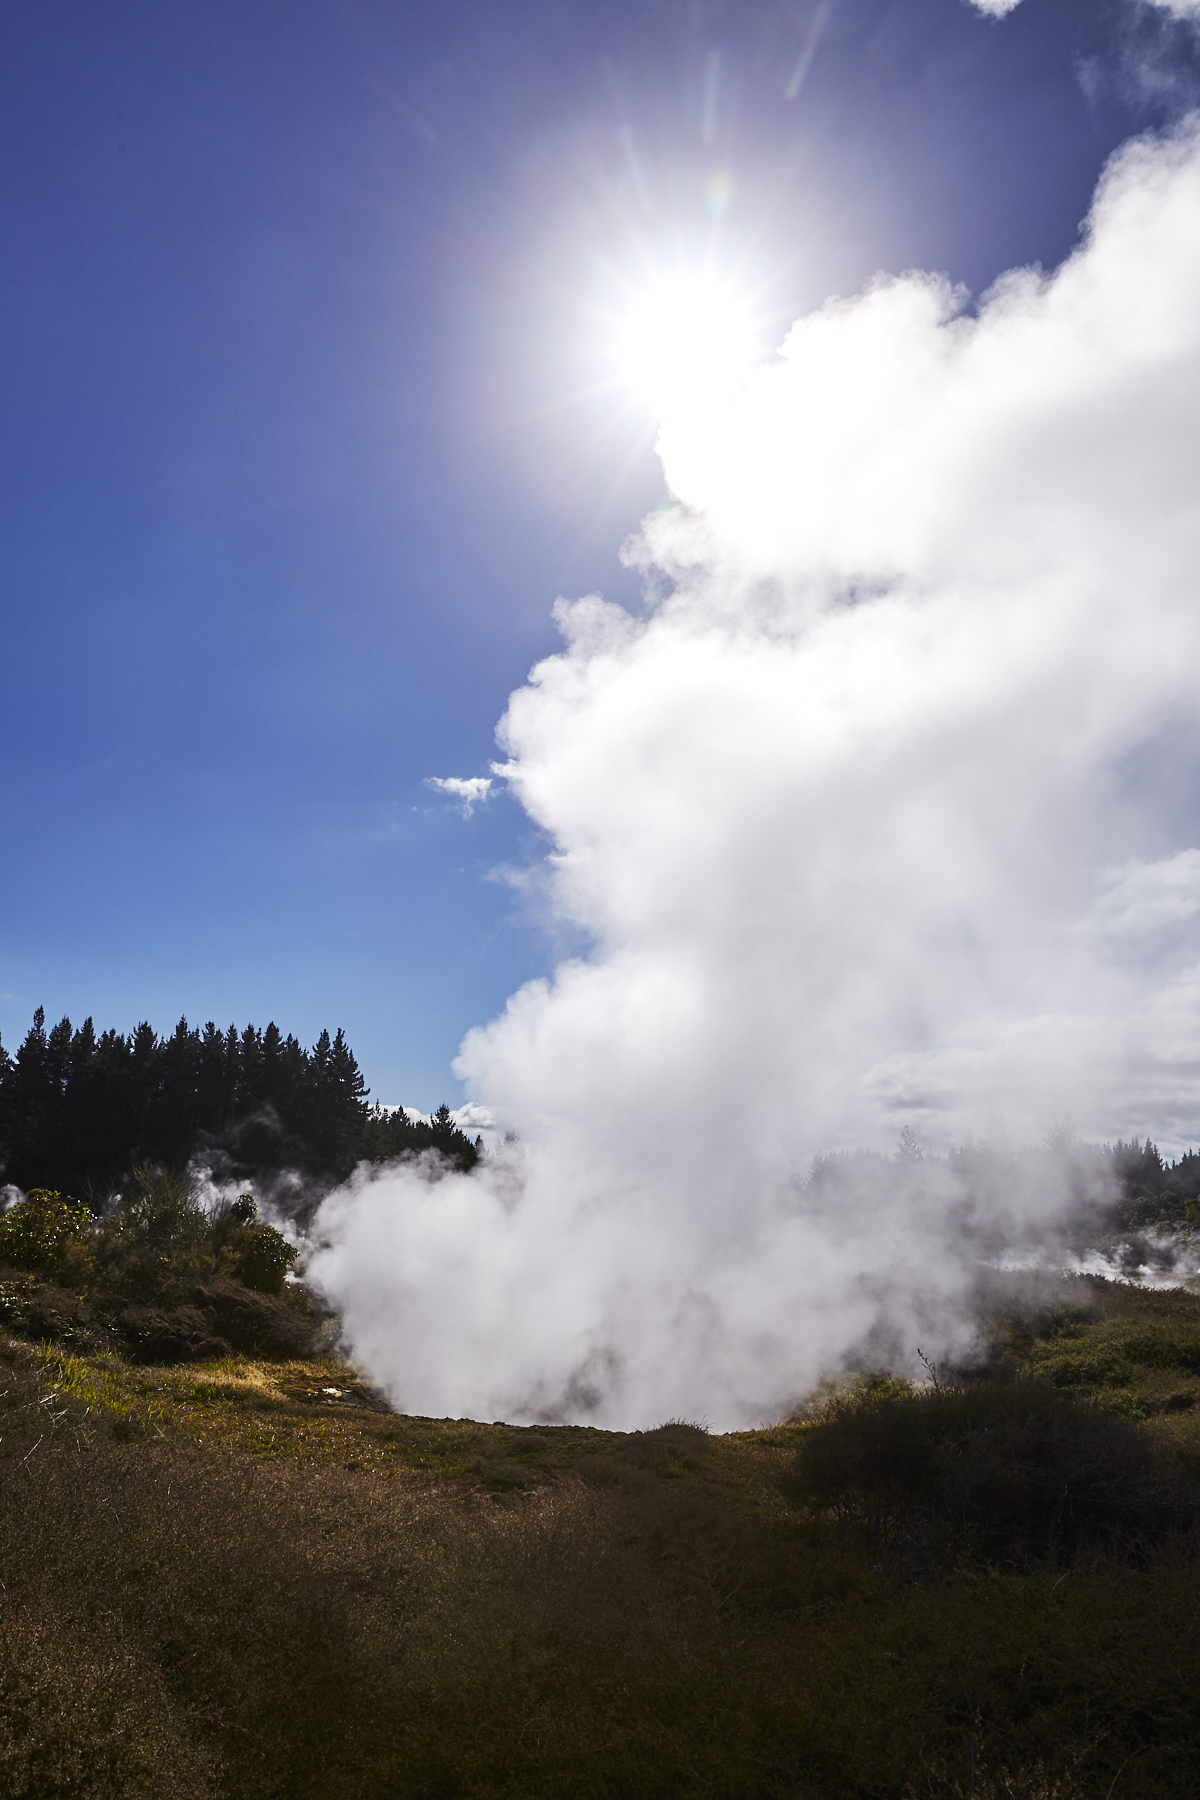 Craters of the moon landscape, Taupo, New Zealand